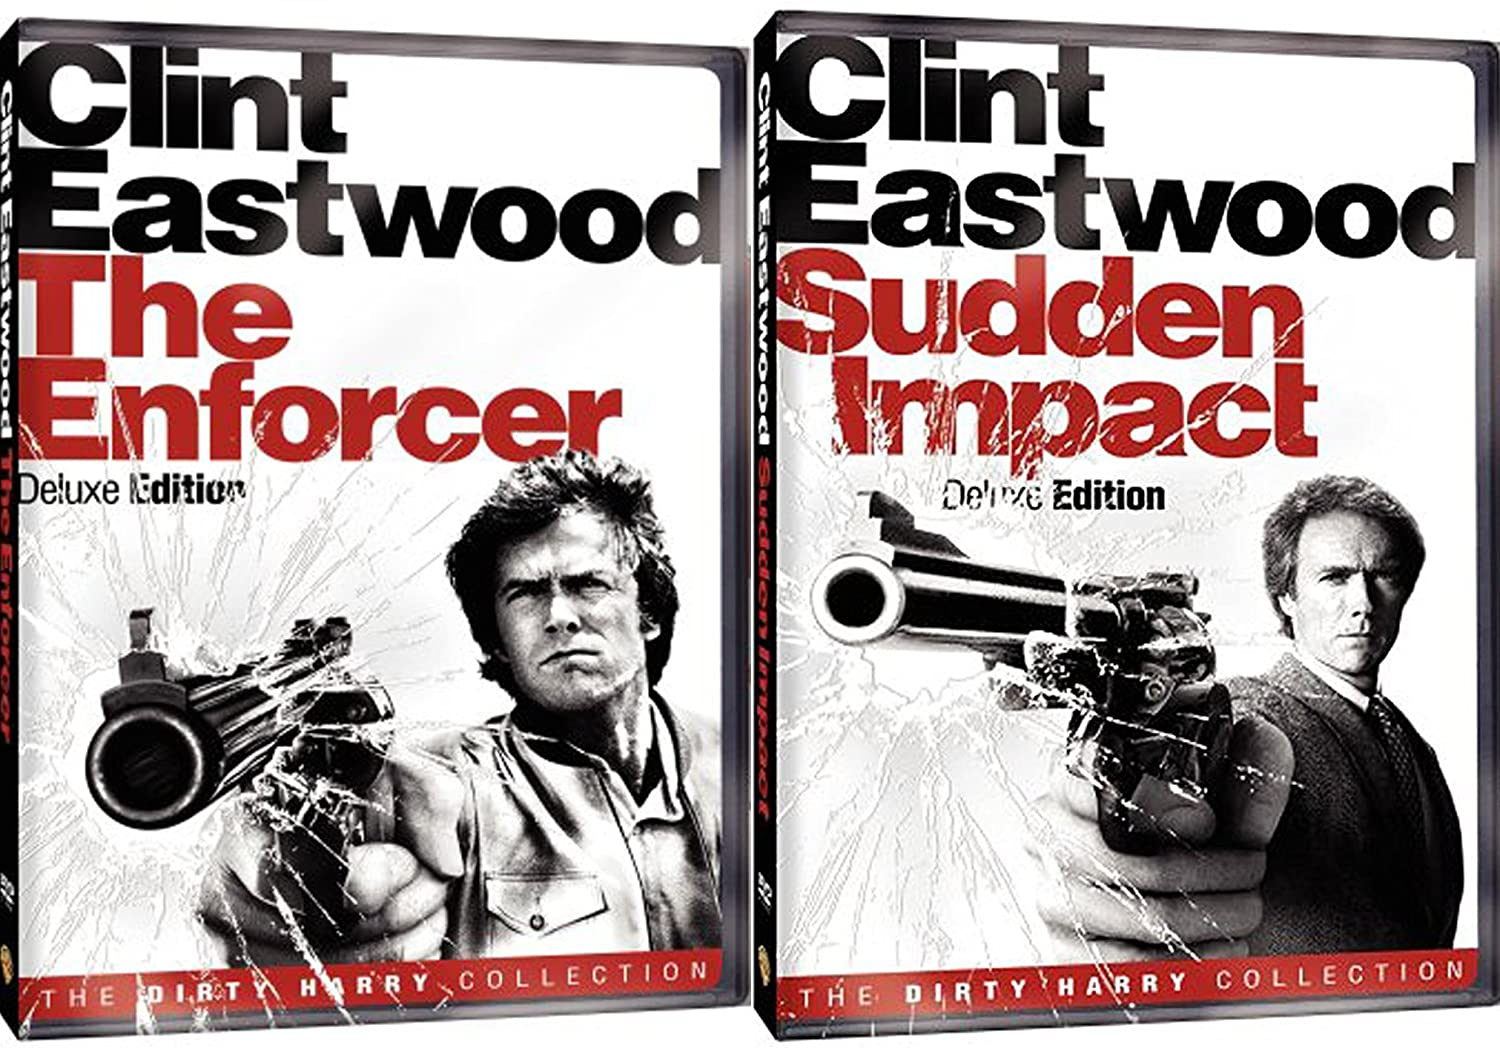 Amazon Com Sudden Impact Deluxe Edition The Enforcer Dvd Dirty Harry Crime Action Pack 2 Movie Set Clint Eastwood Double Feature Movies Tv